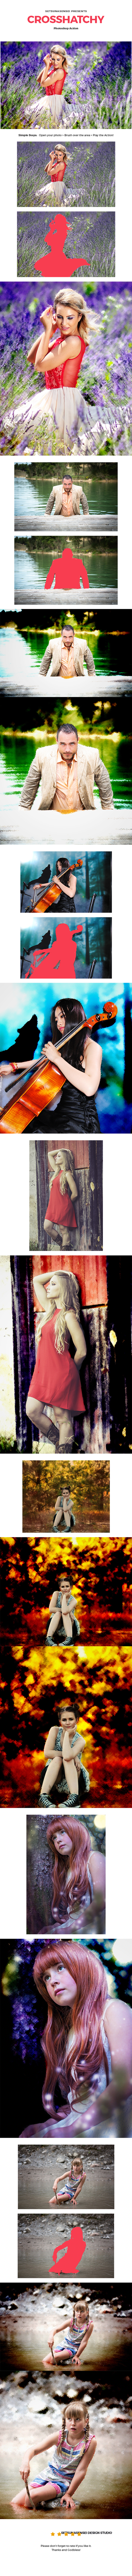 Crosshatchy Photoshop Action - Photo Effects Actions